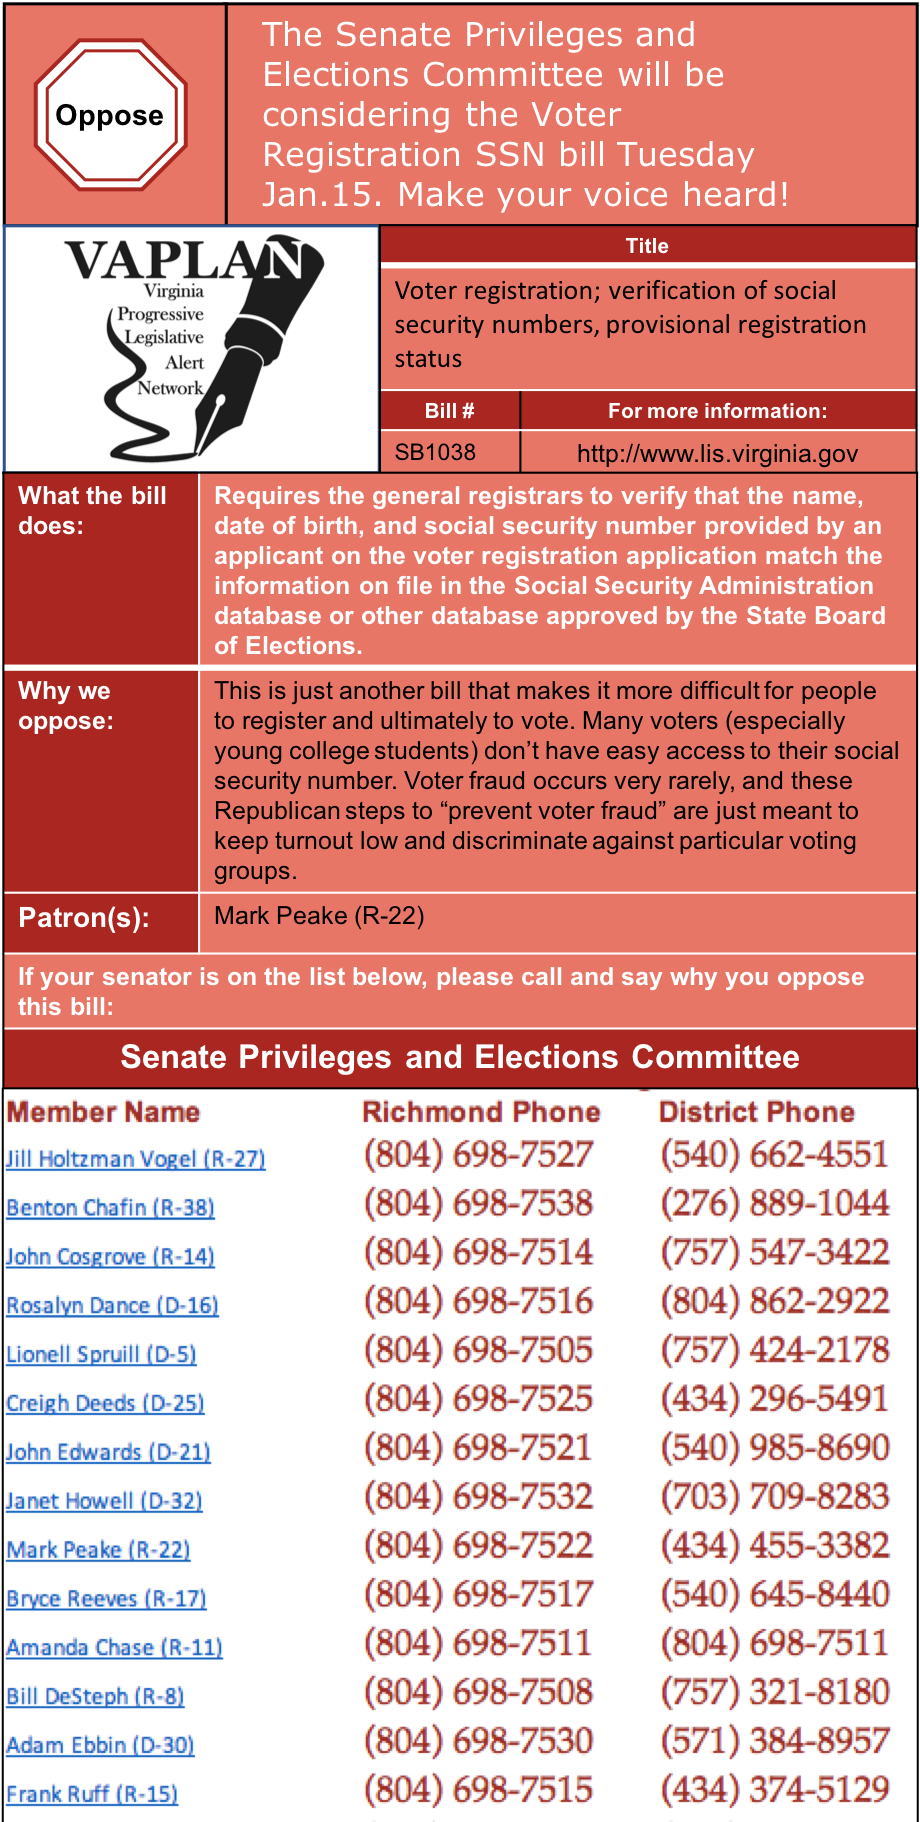 ALERT: Oppose requiring SSN on voter registration (SB1038) in Senate Privileges and Elections Tues Jan. 15